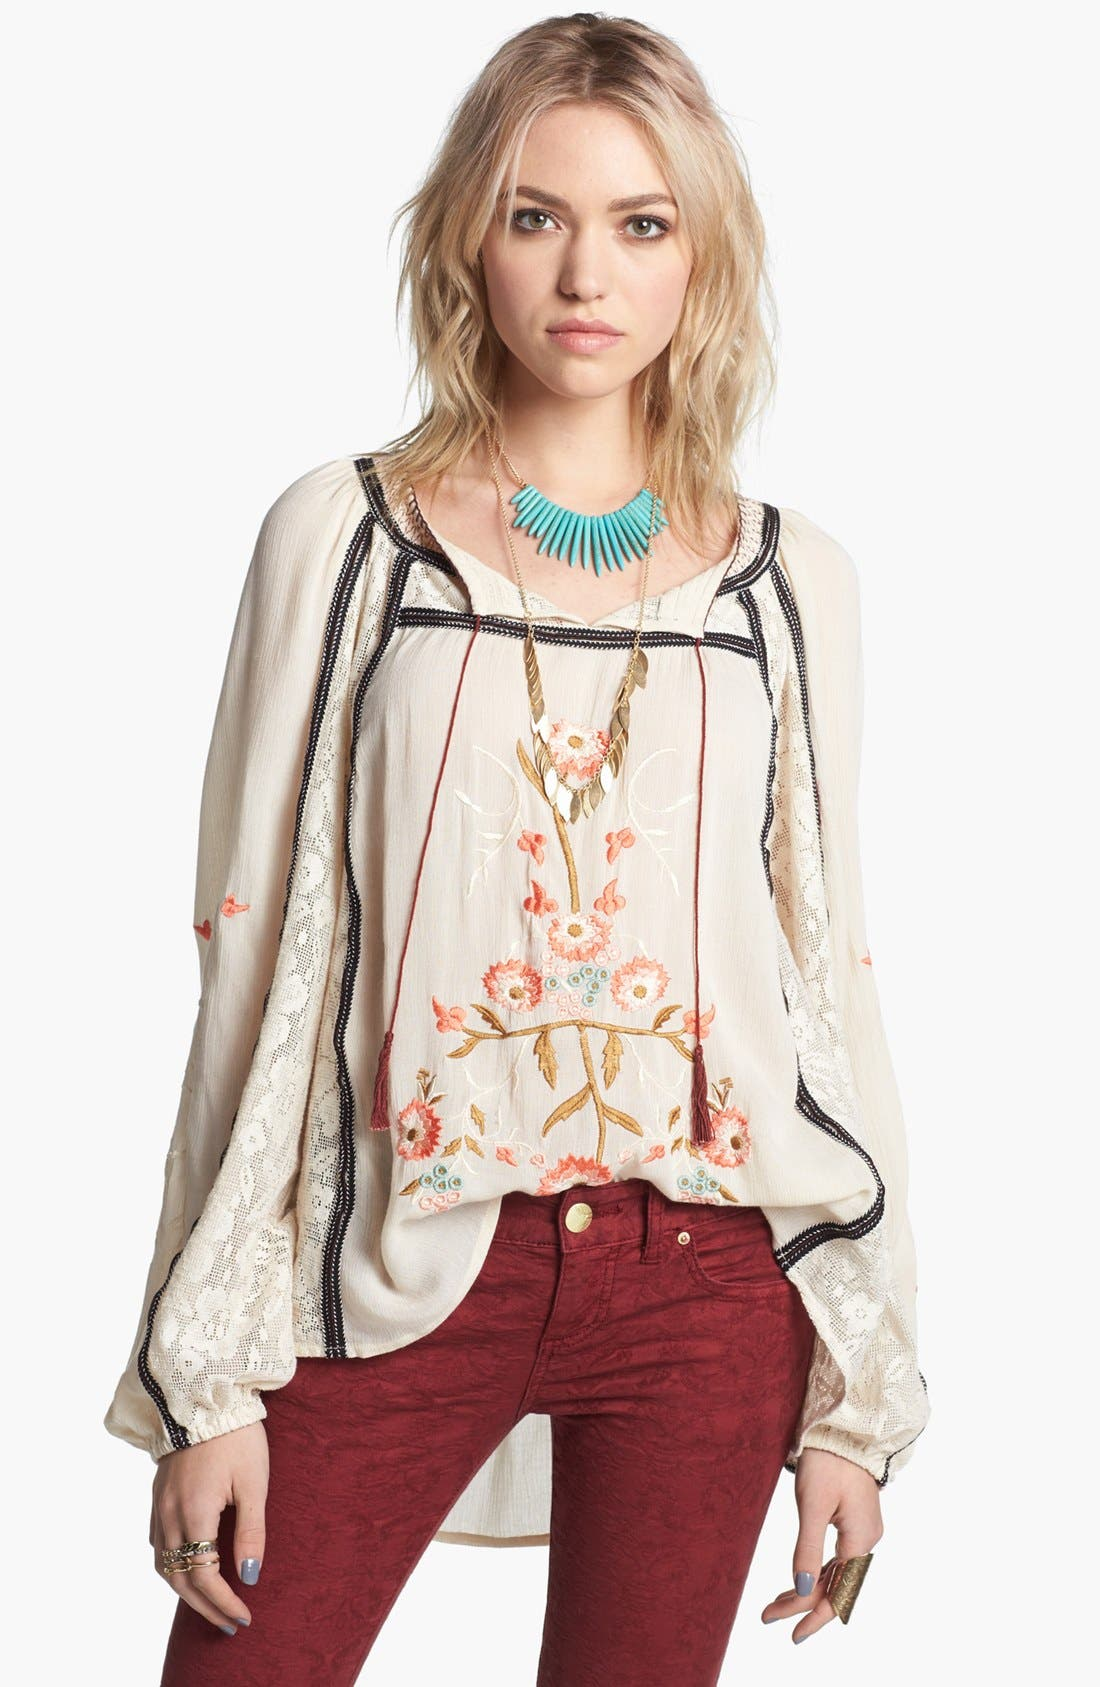 FREE PEOPLE, 'Tiger Lily' Embroidered Top, Main thumbnail 1, color, 900